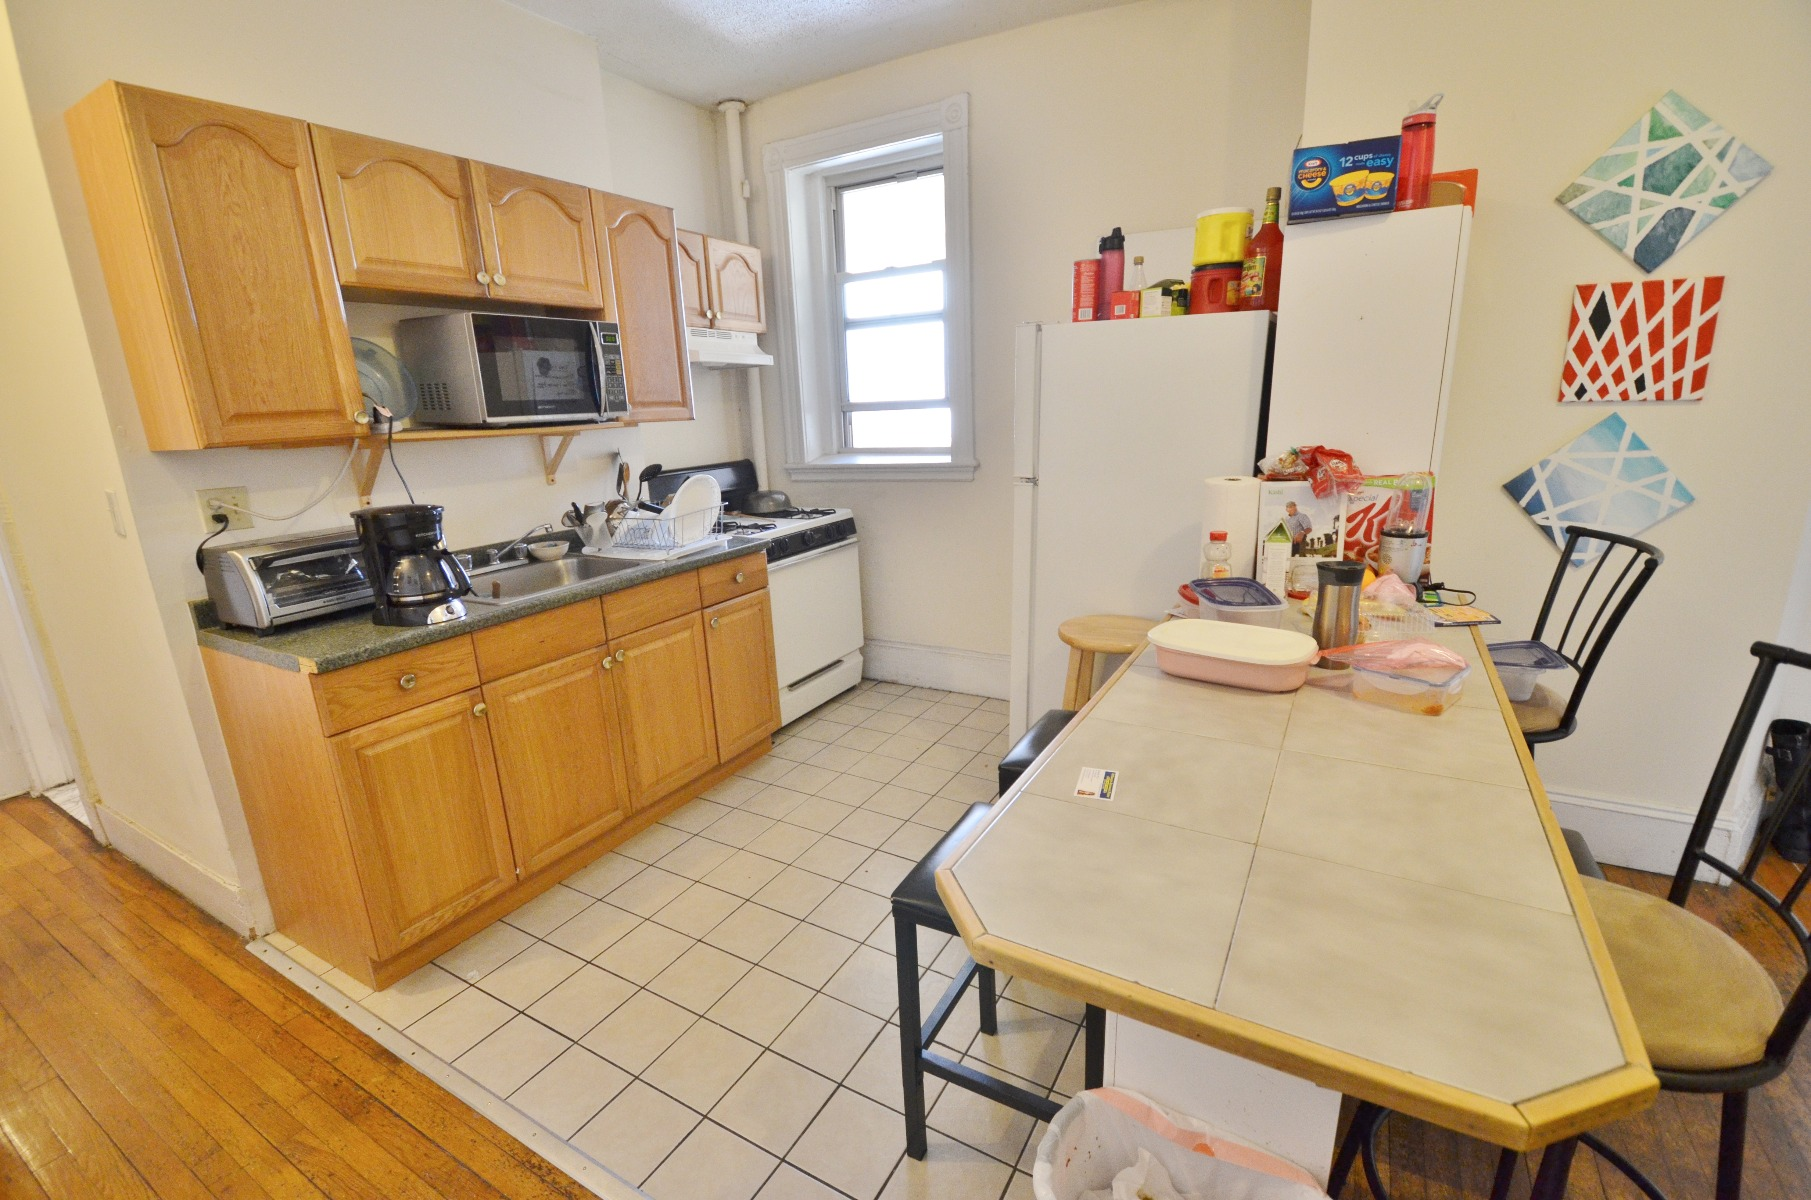 GORGEOUS, INCREDIBLE RECENTLY RENOVATED 3 BED 1 BATH!!!!